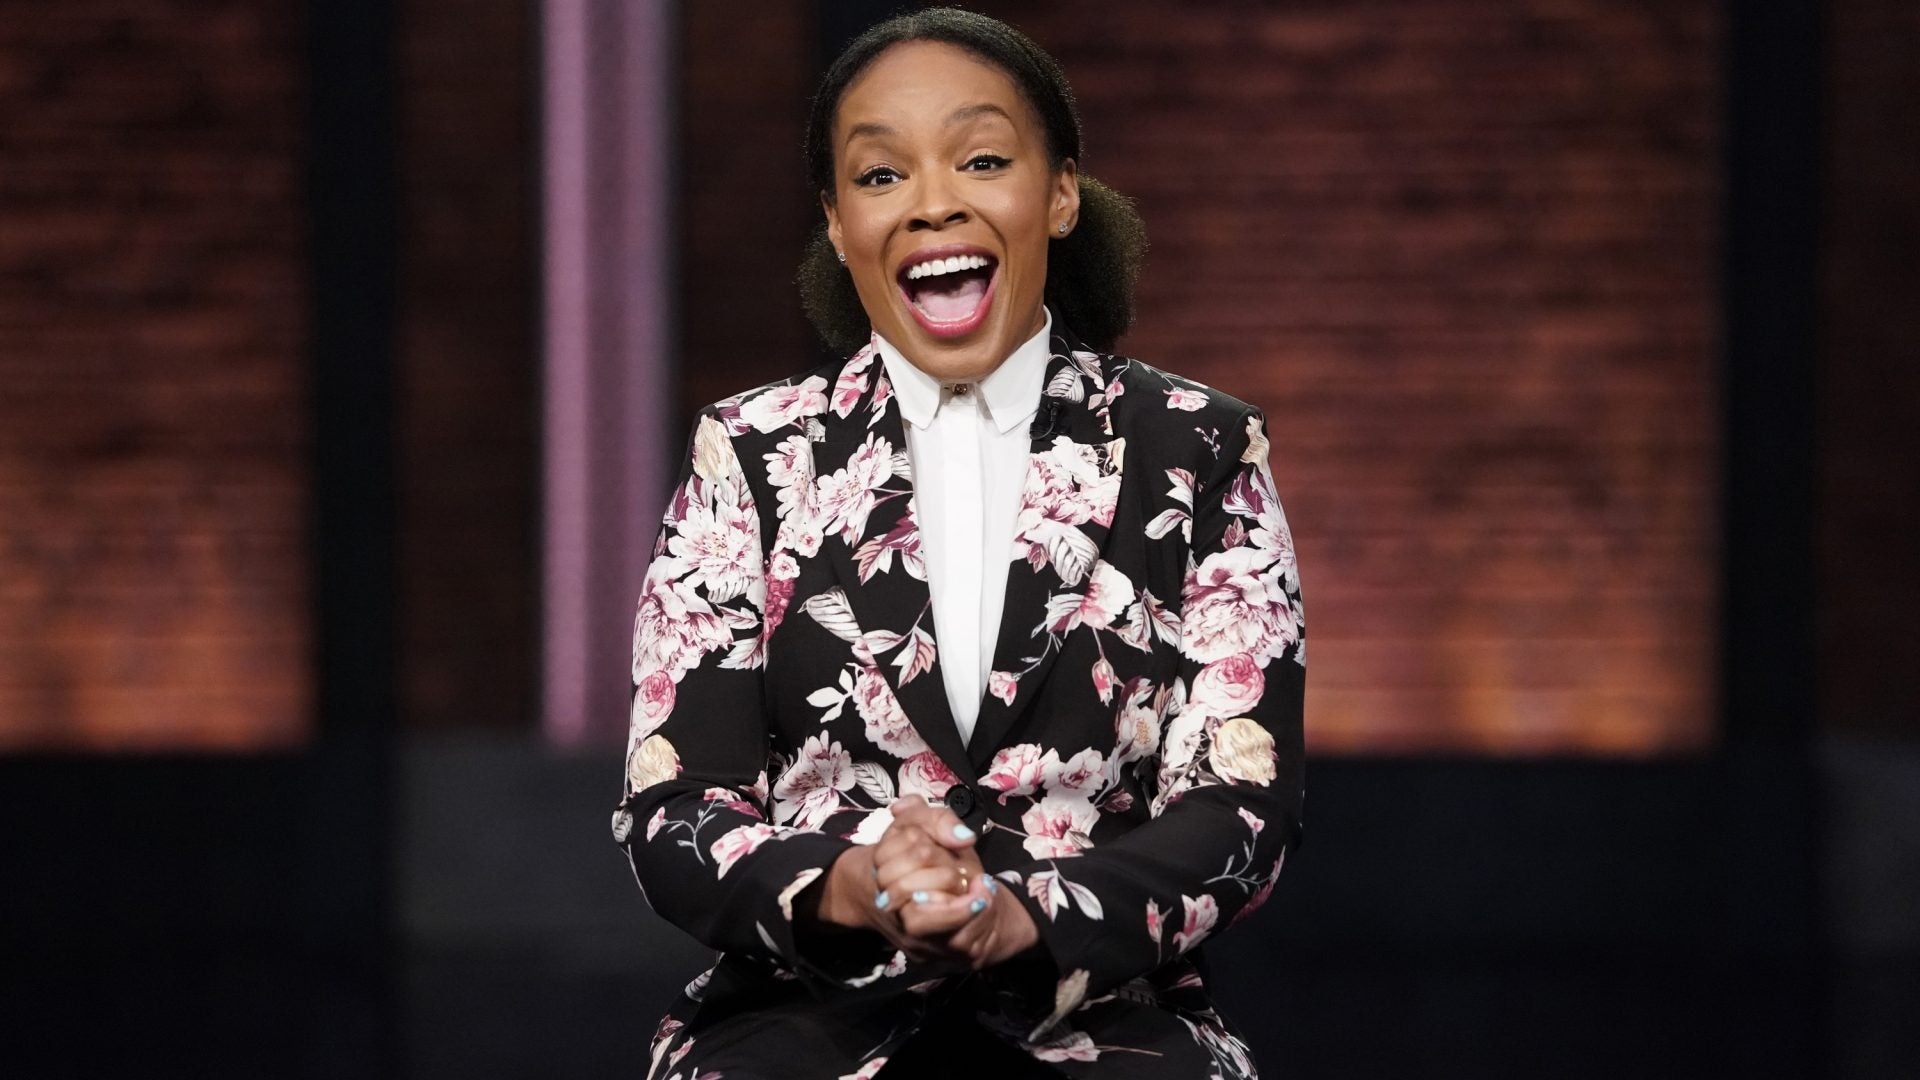 'The Amber Ruffin Show' Is Coming To Late Night Thanks To Peacock